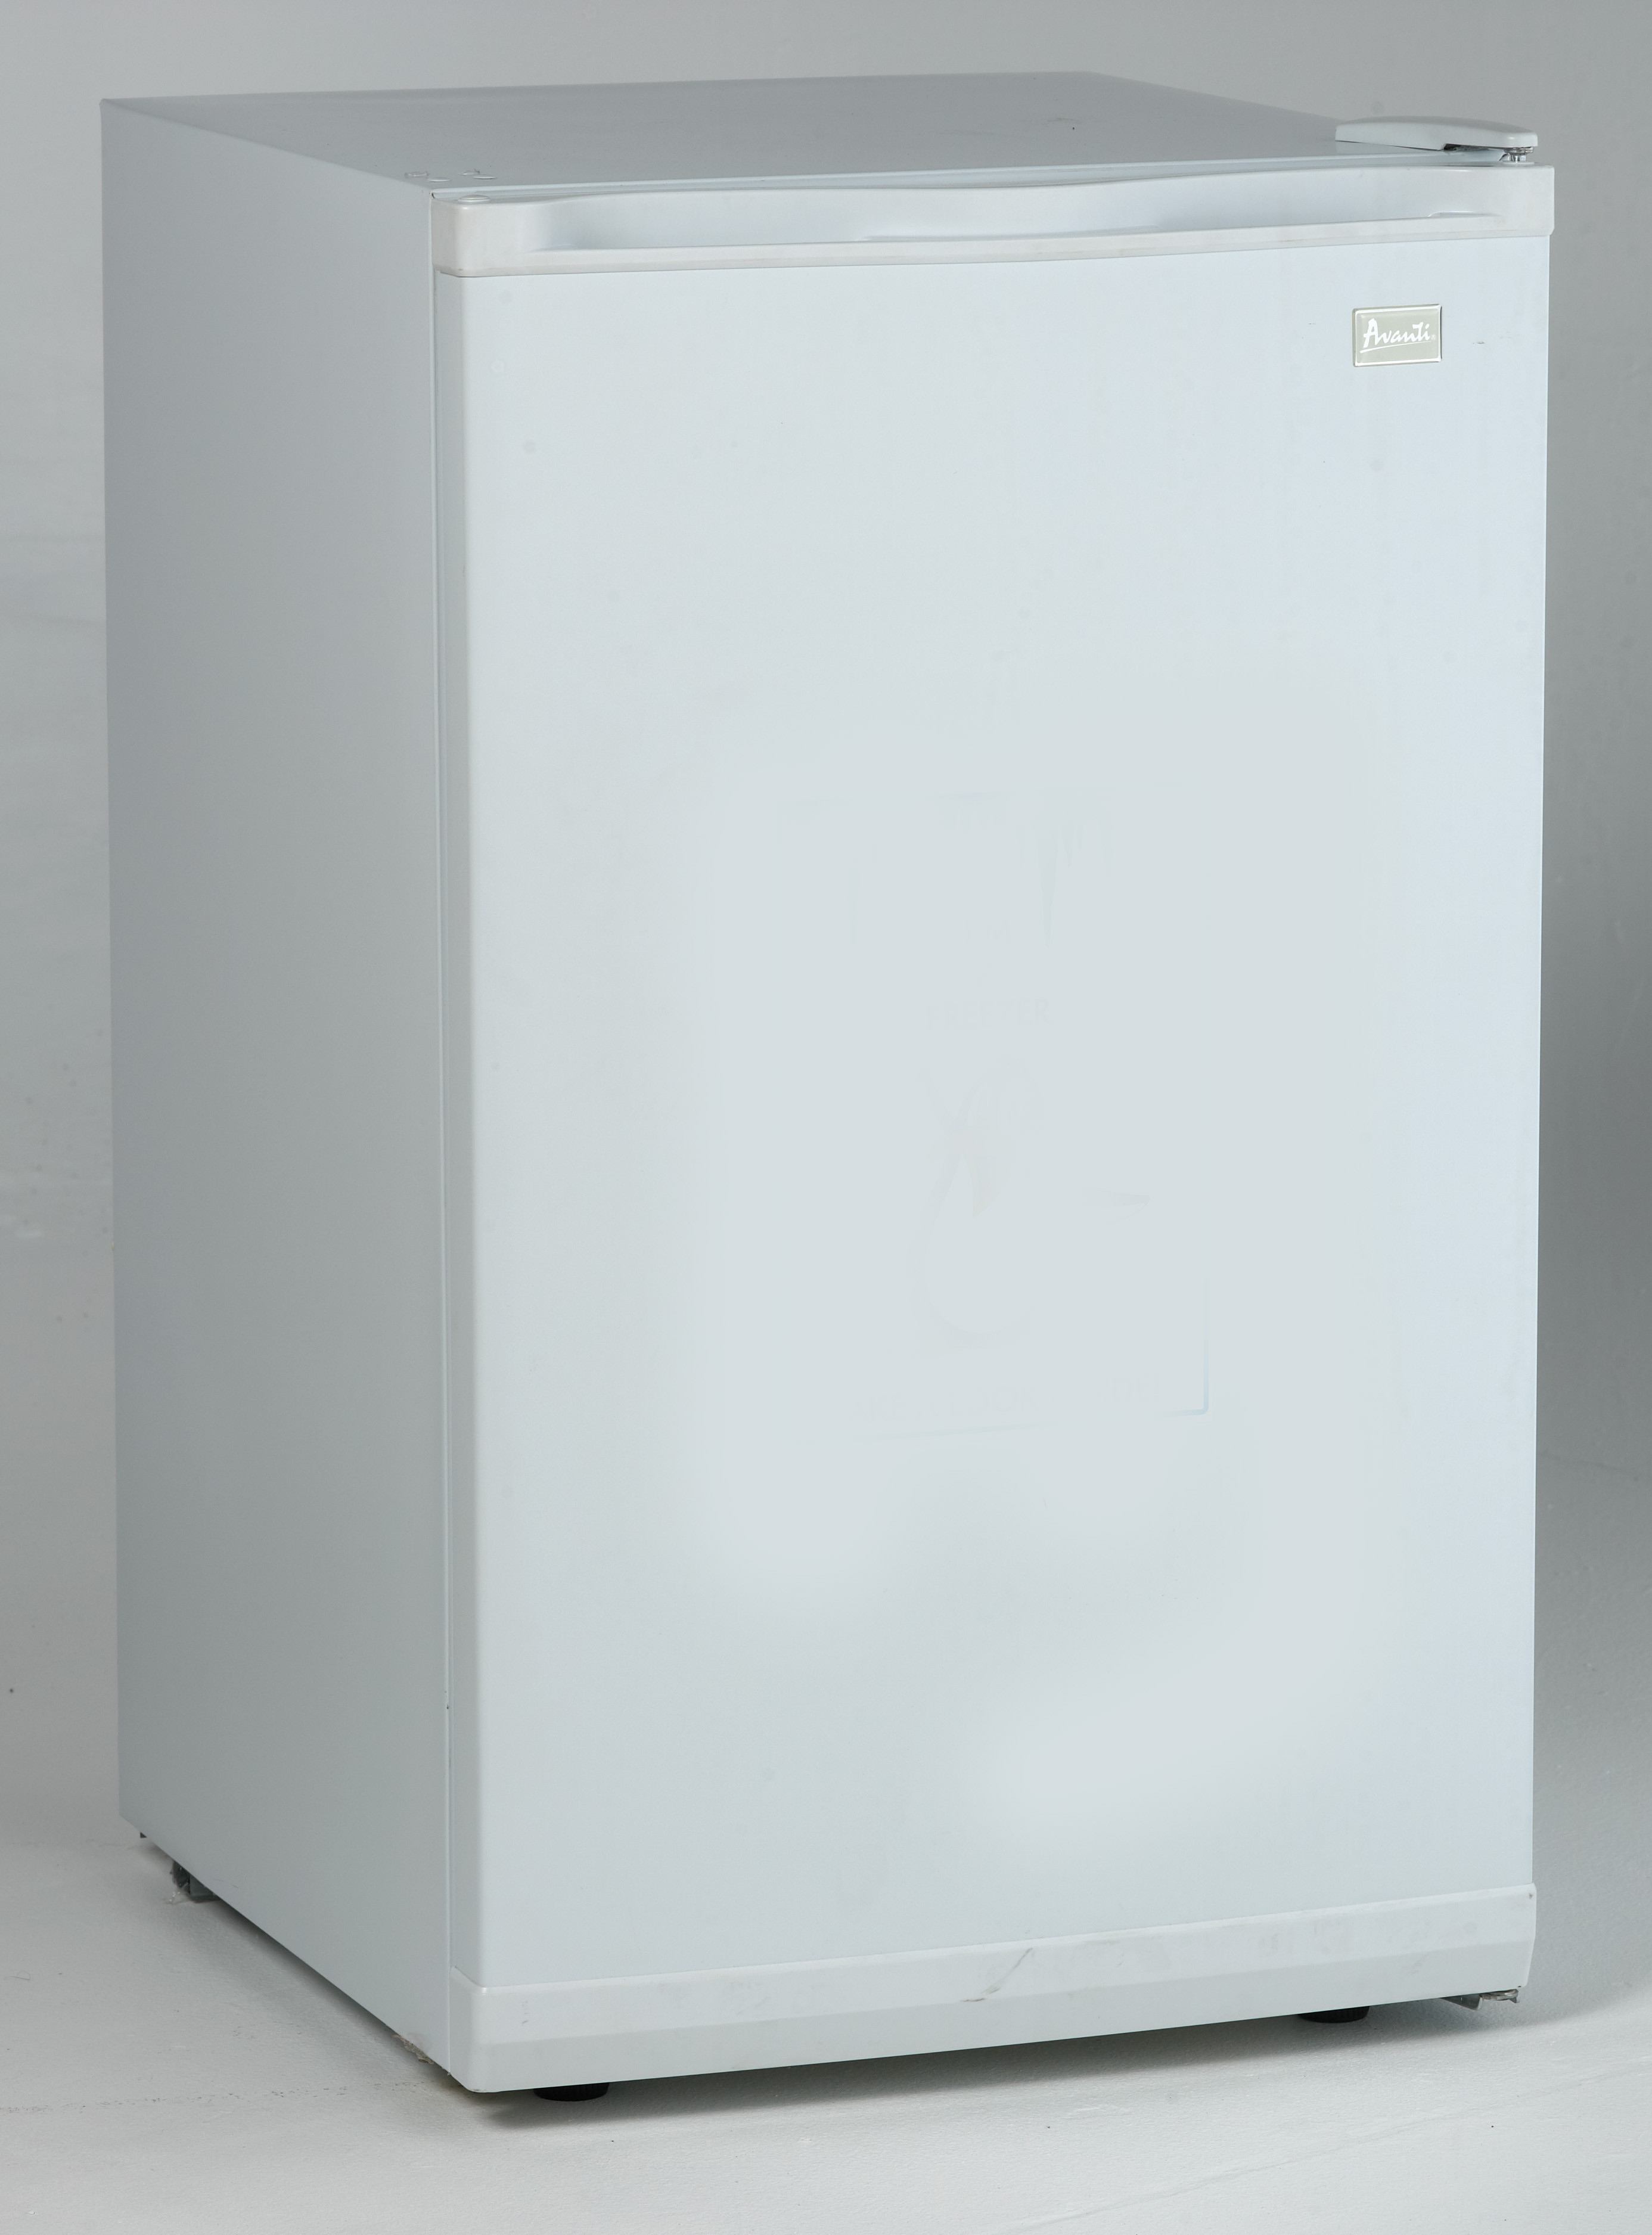 Avanti Countertop Dishwasher Avanti Vf306 2 8 Cu Ft Upright Freezer With 3 Fixed